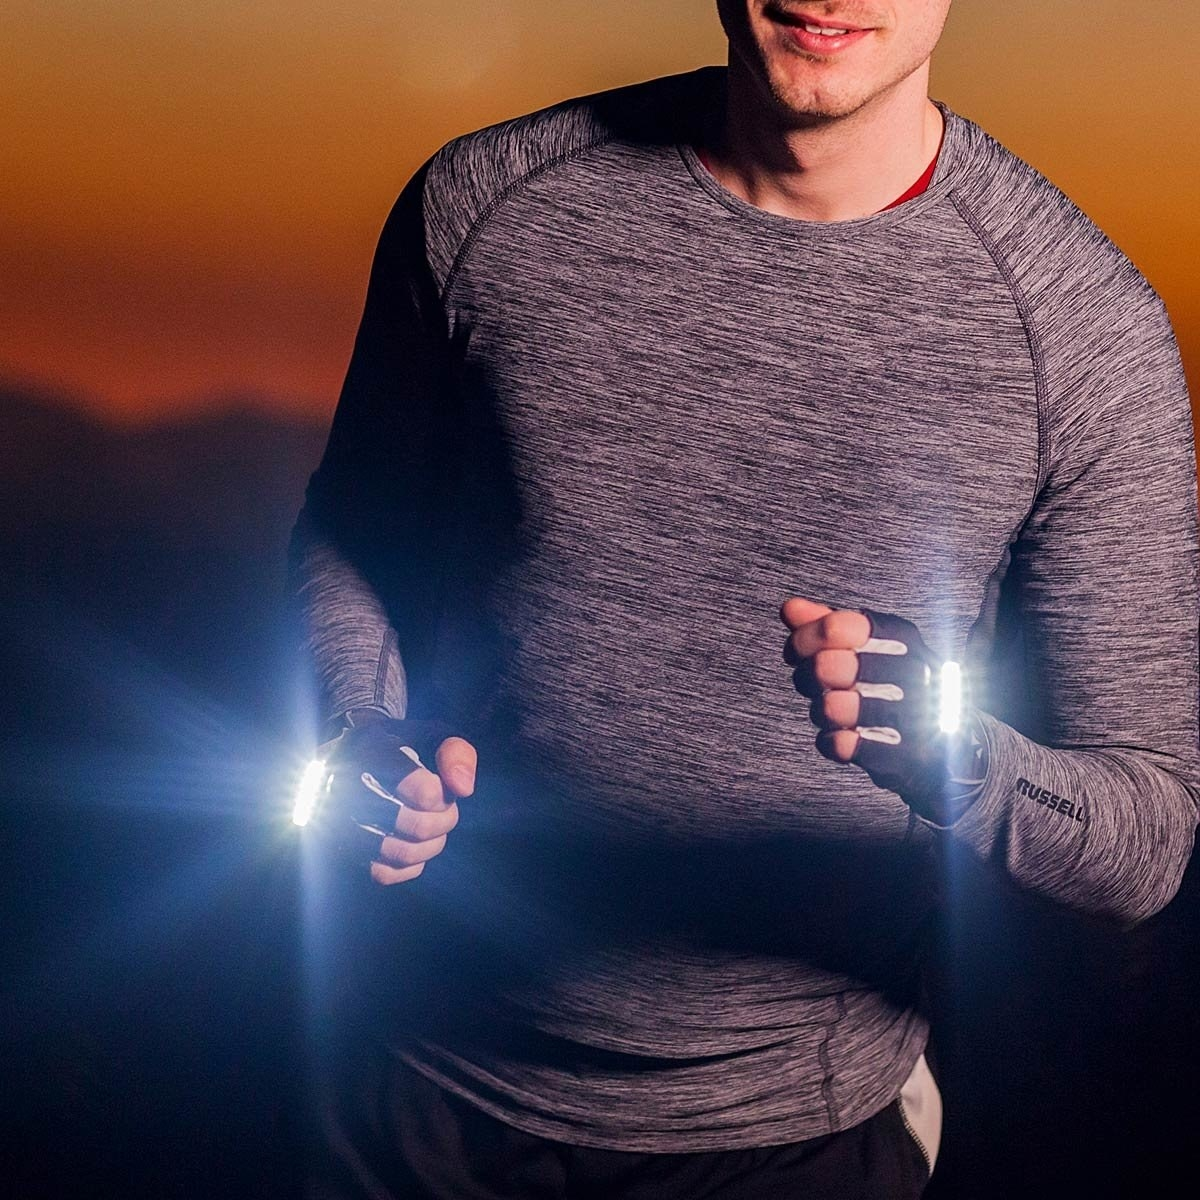 A runner wearing the gloves, which are glowing brightly